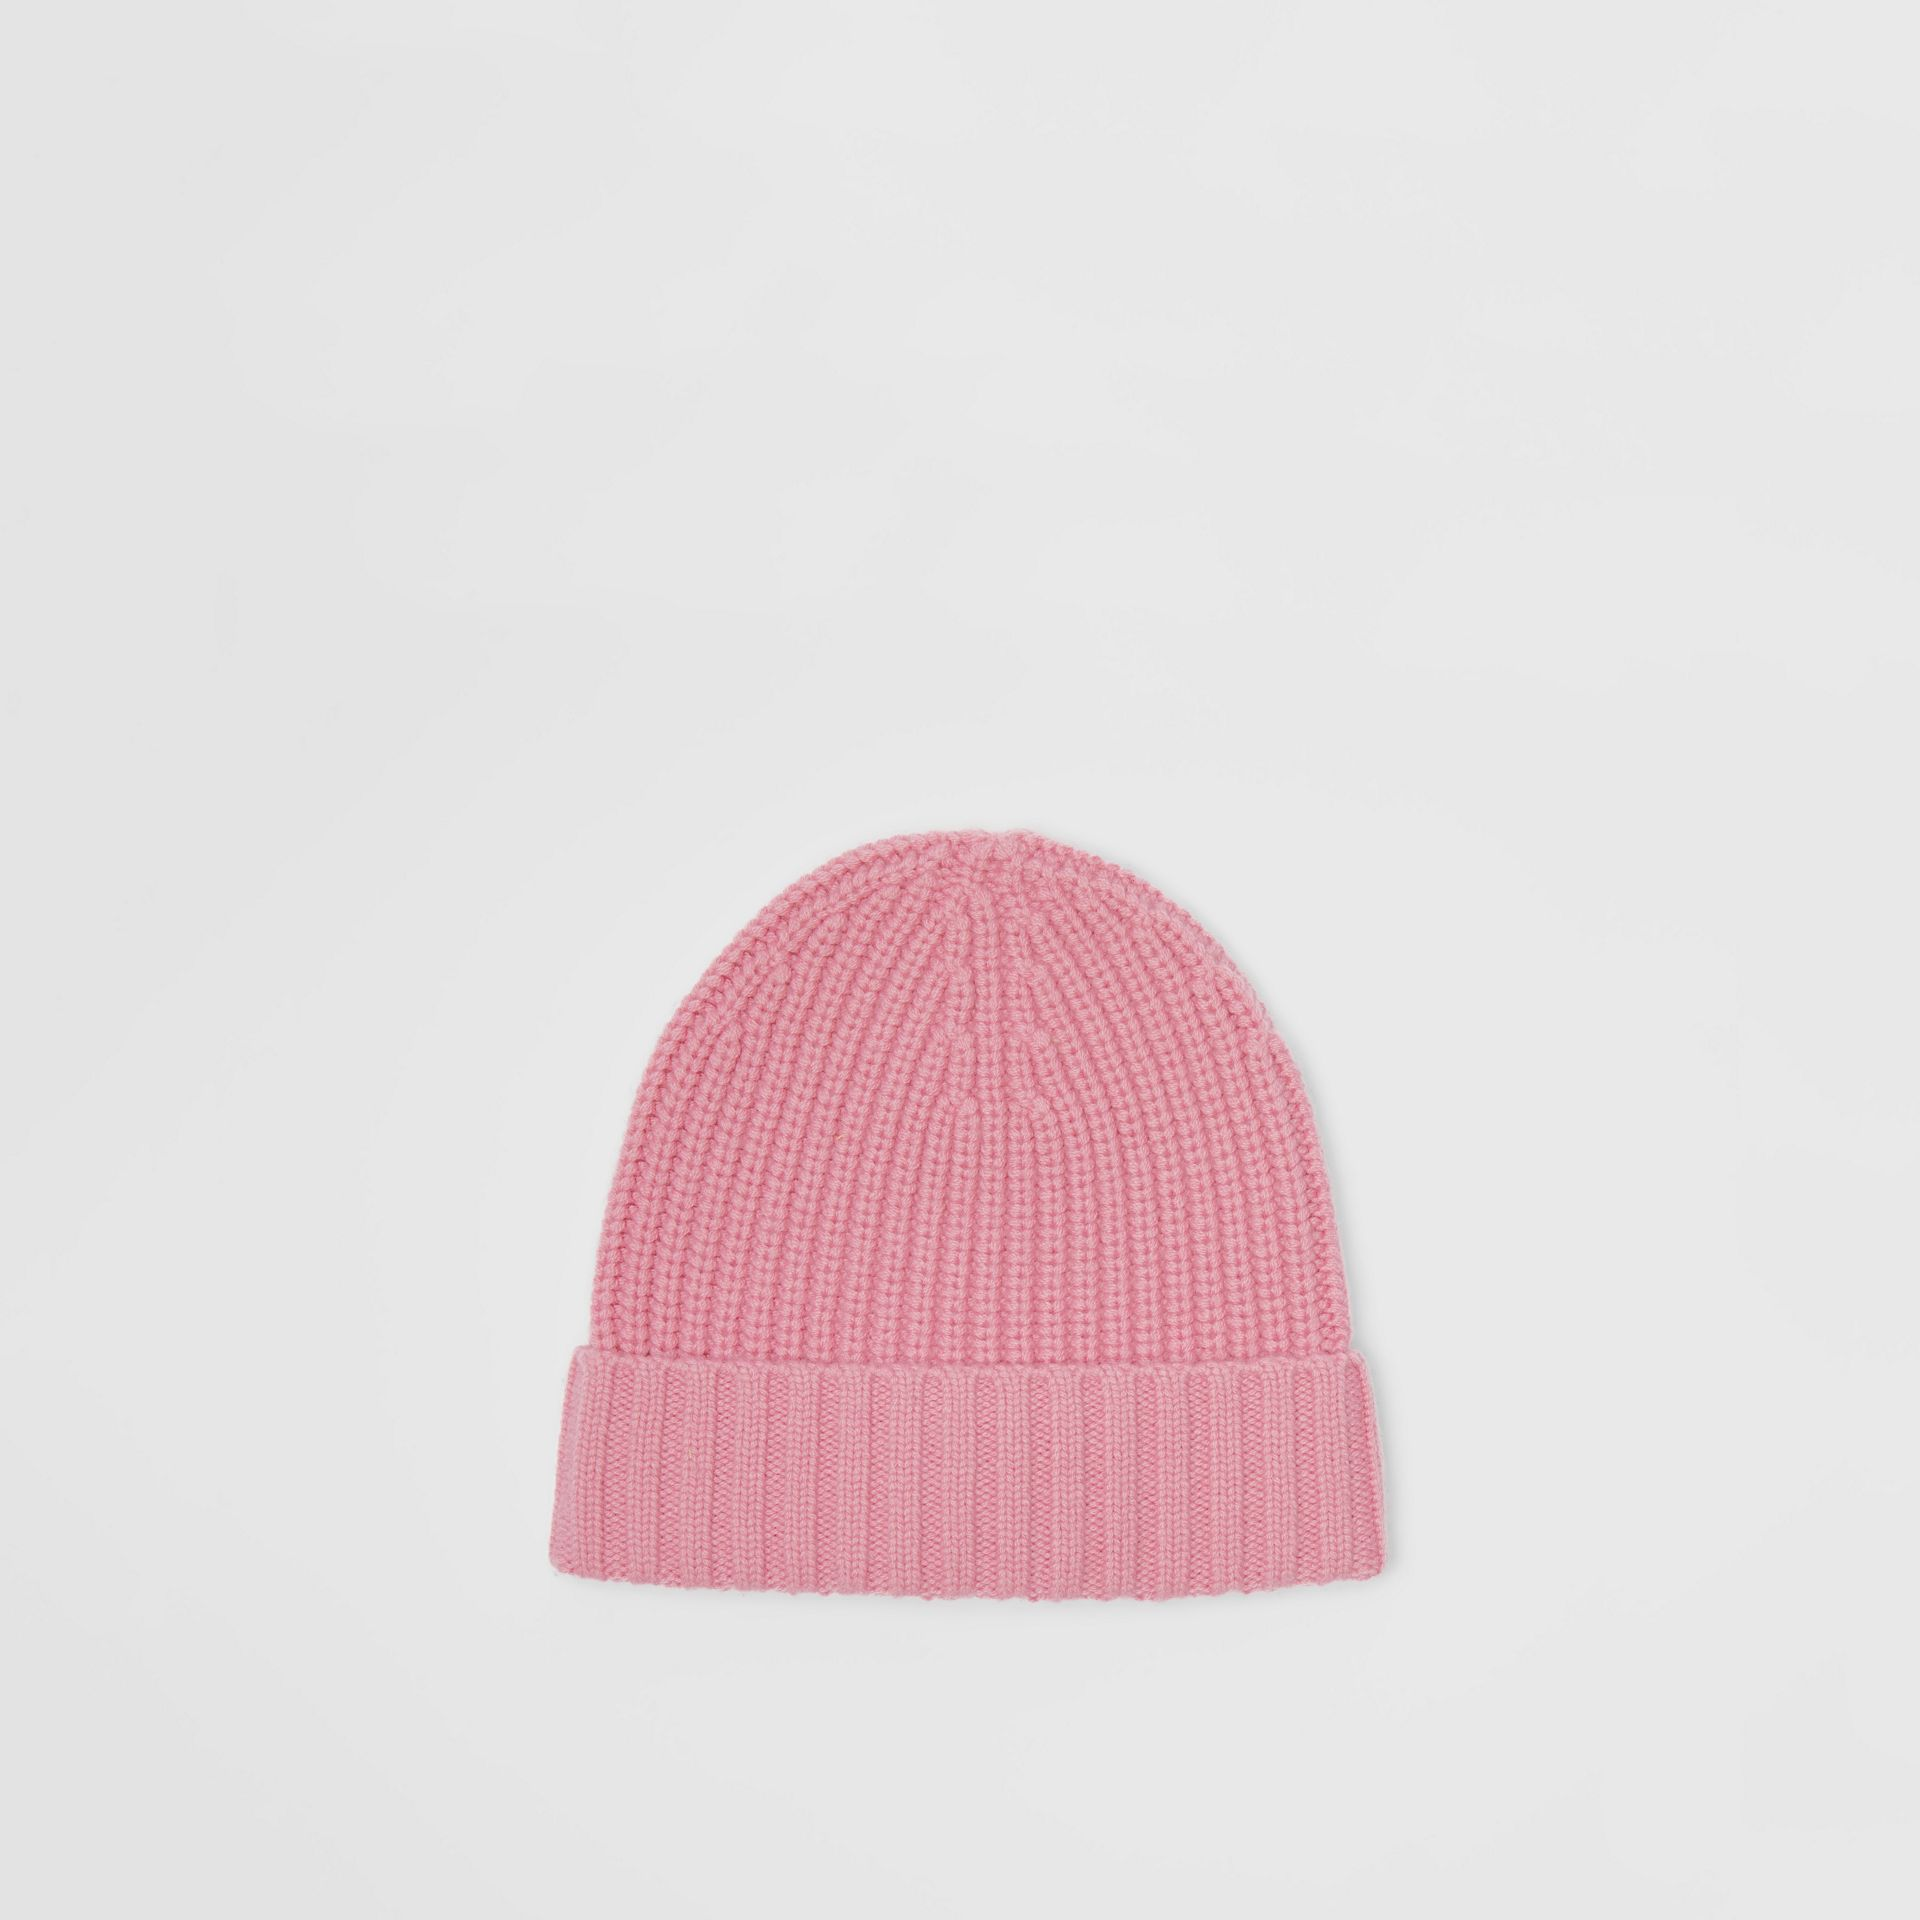 Embroidered Crest Rib Knit Wool Cashmere Beanie in Rose Pink | Burberry - gallery image 3